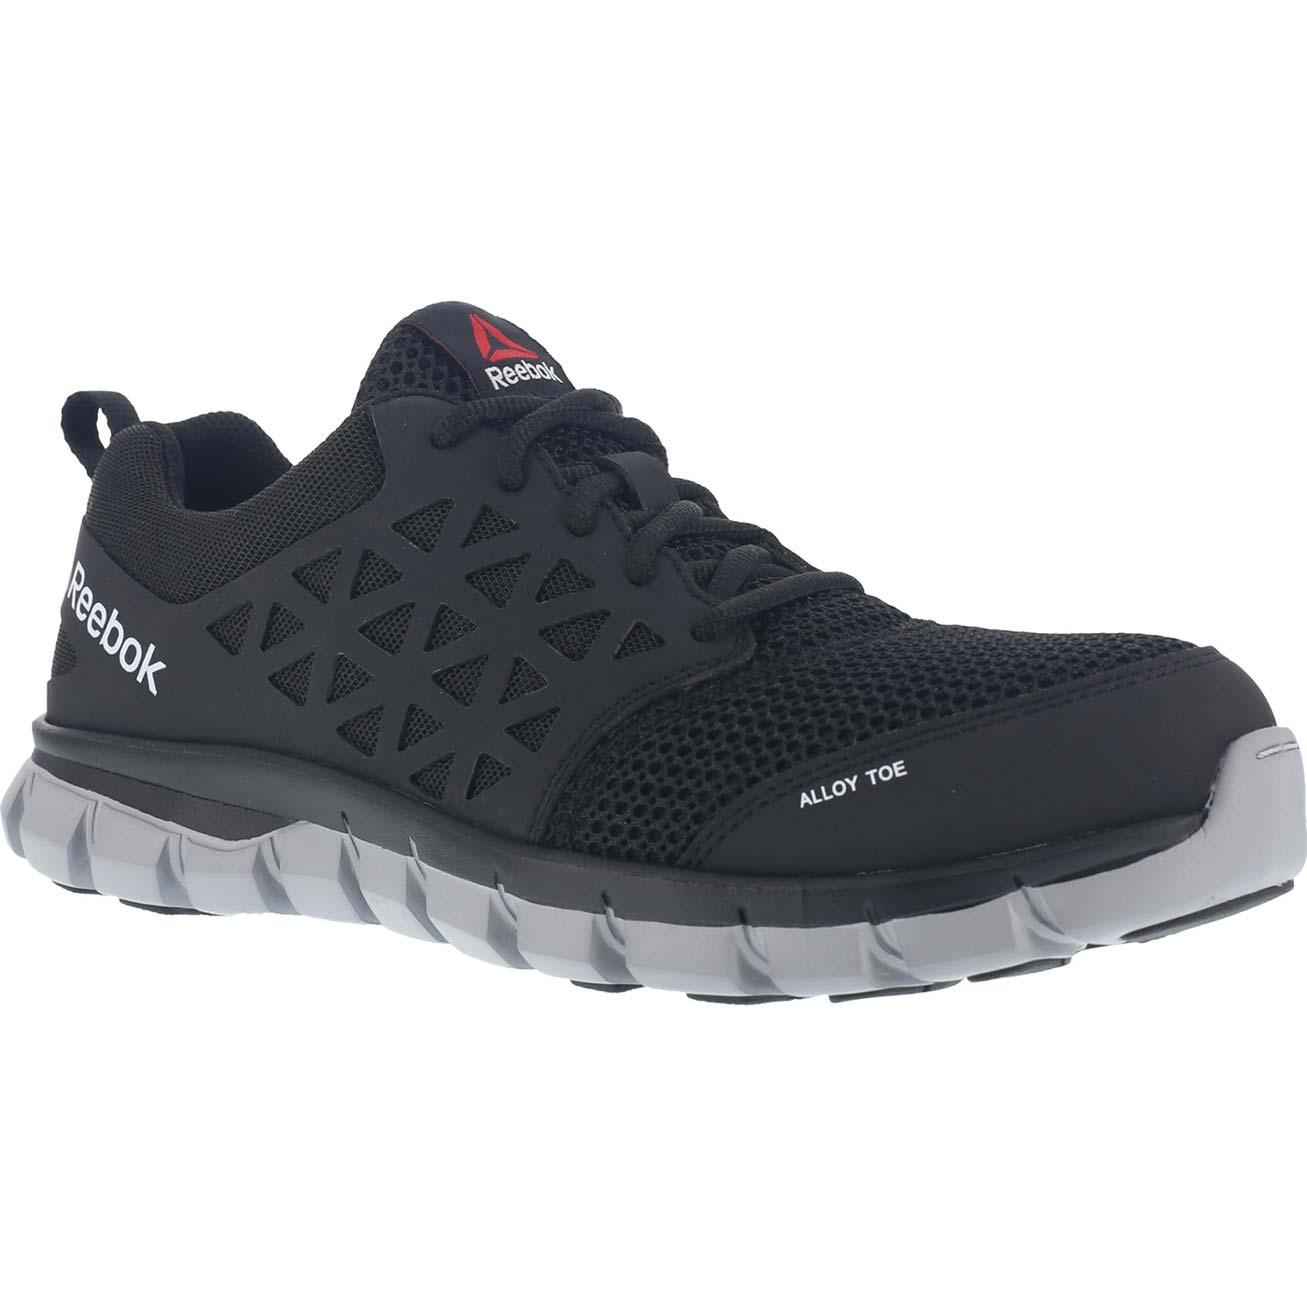 276e458c90a Reebok Sublite Cushion Work Men s Alloy Toe Electrical Hazard Work Athletic  ShoeReebok Sublite Cushion Work Men s Alloy Toe Electrical Hazard Work  Athletic ...